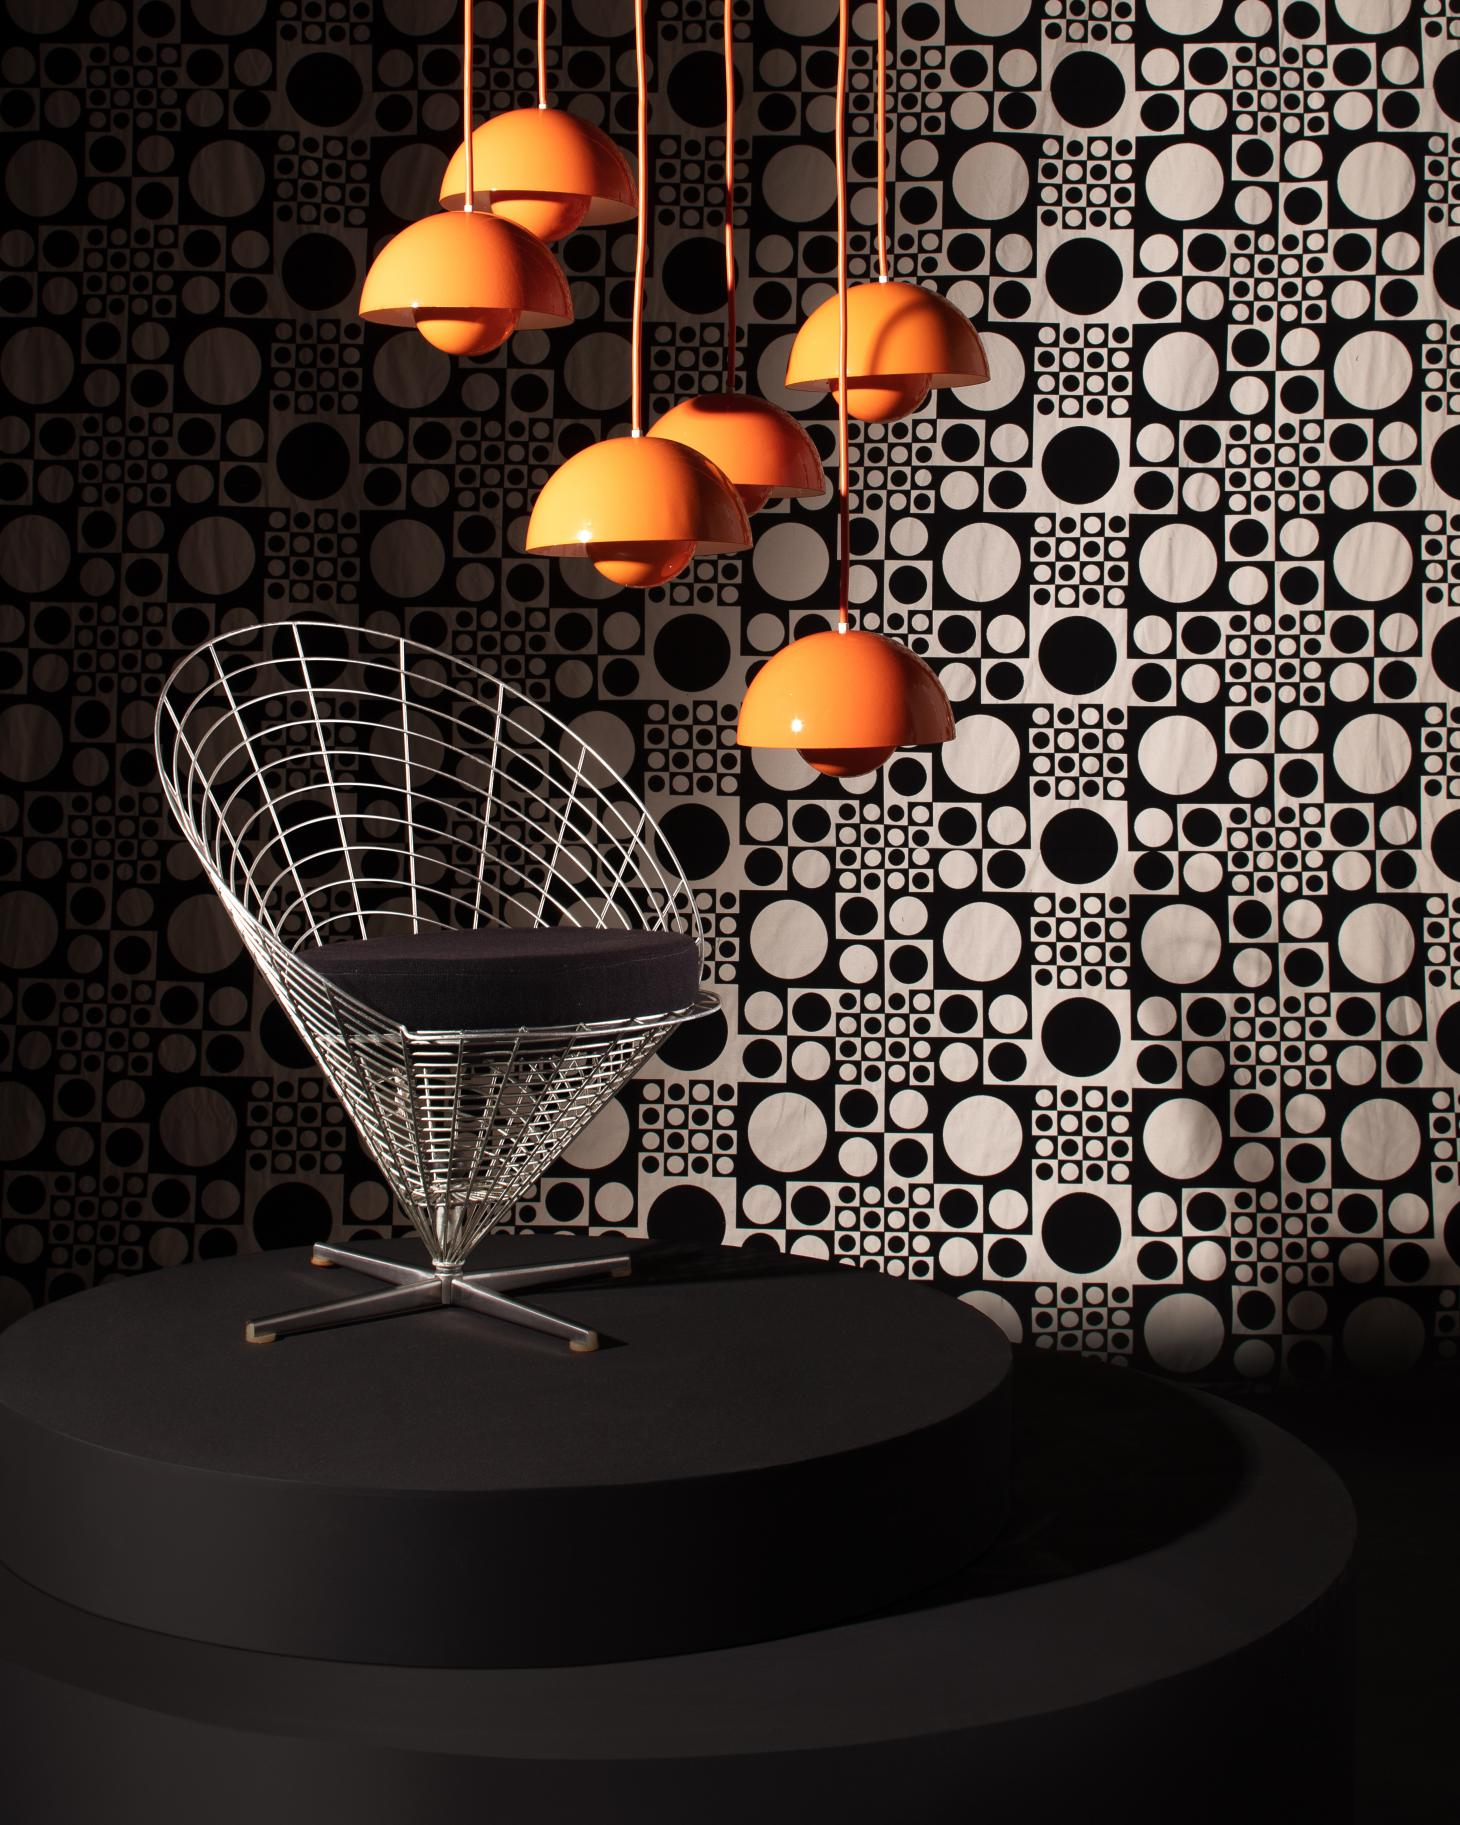 A Wire Cone chair and orange pendant lights by Verner Panton photographed with a black and white optical backdrop